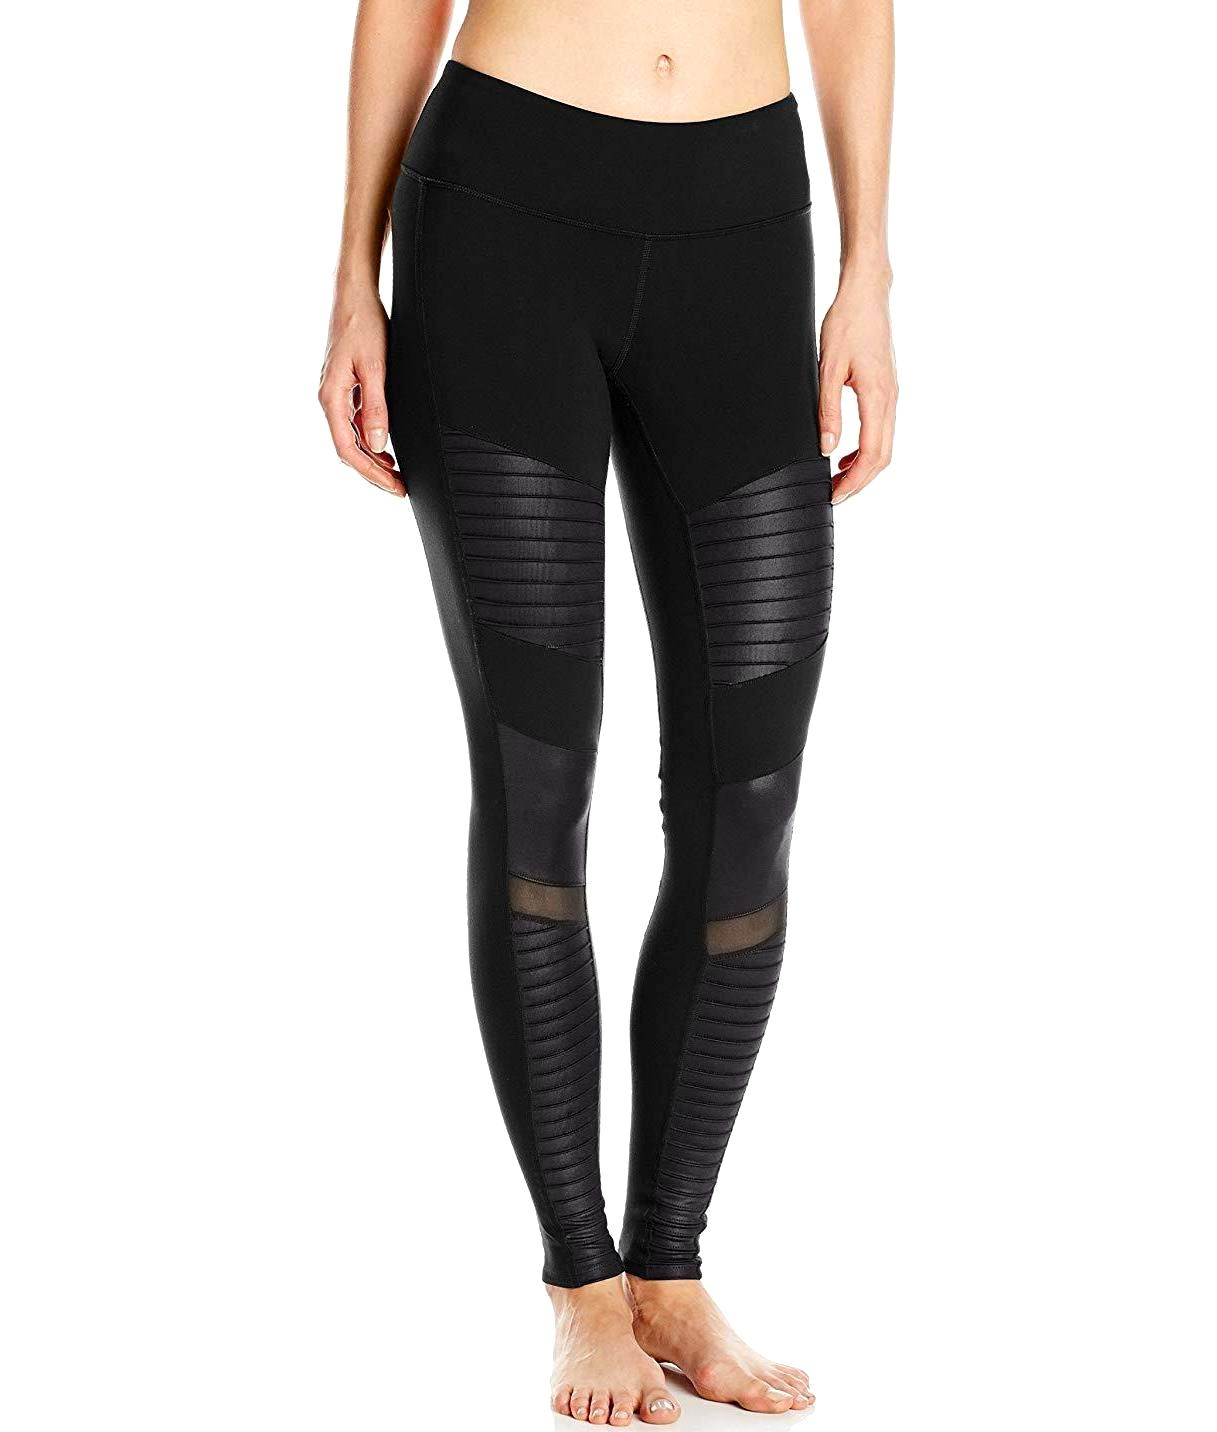 e79bb3d9f0b767 Moto Legging Pants in Black/Black Glossy - Authentic Designer Clothes